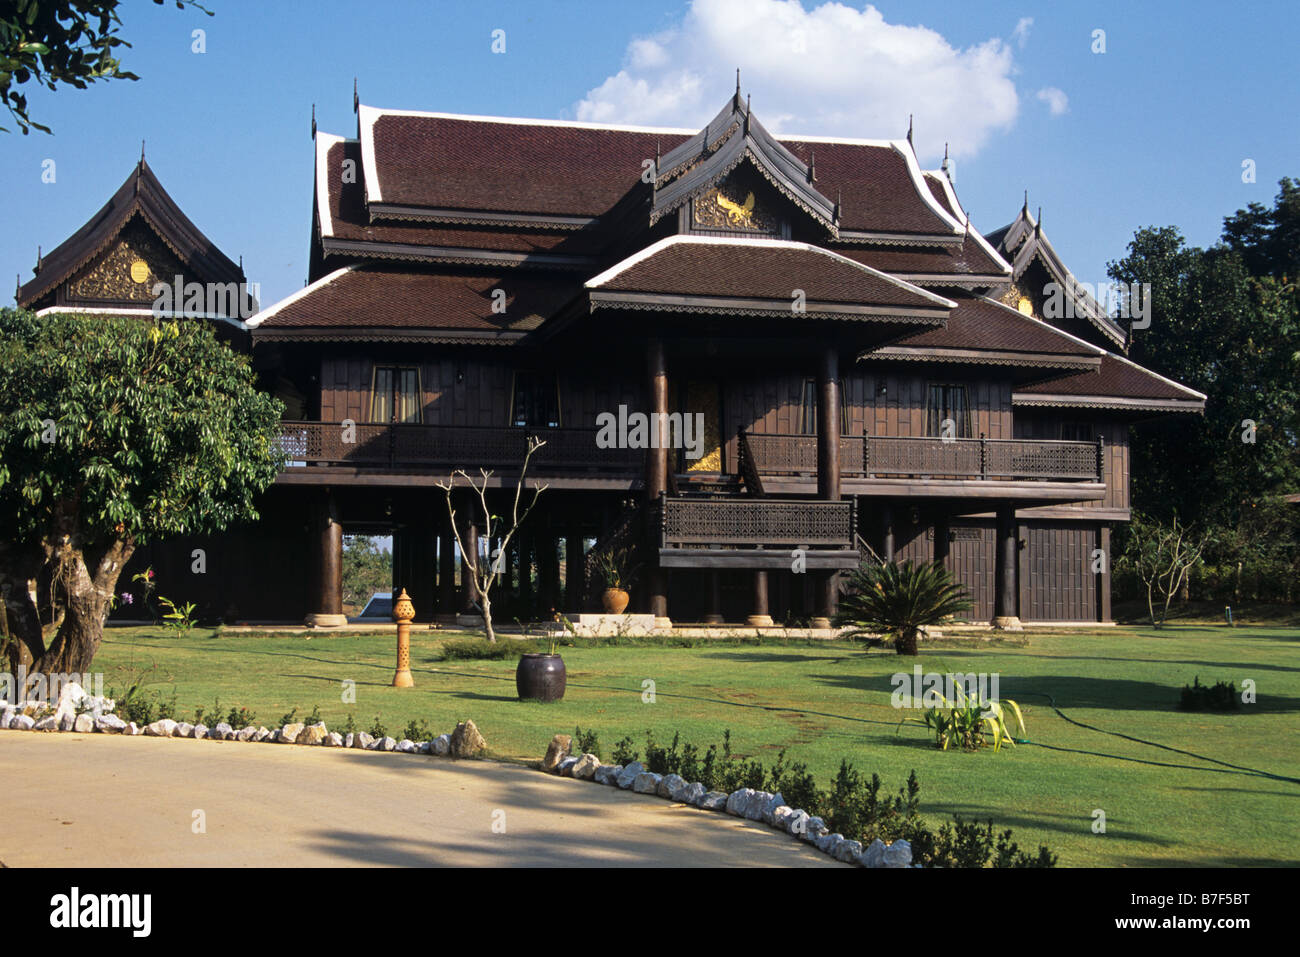 Timber Style Home Stockfotos & Timber Style Home Bilder - Alamy